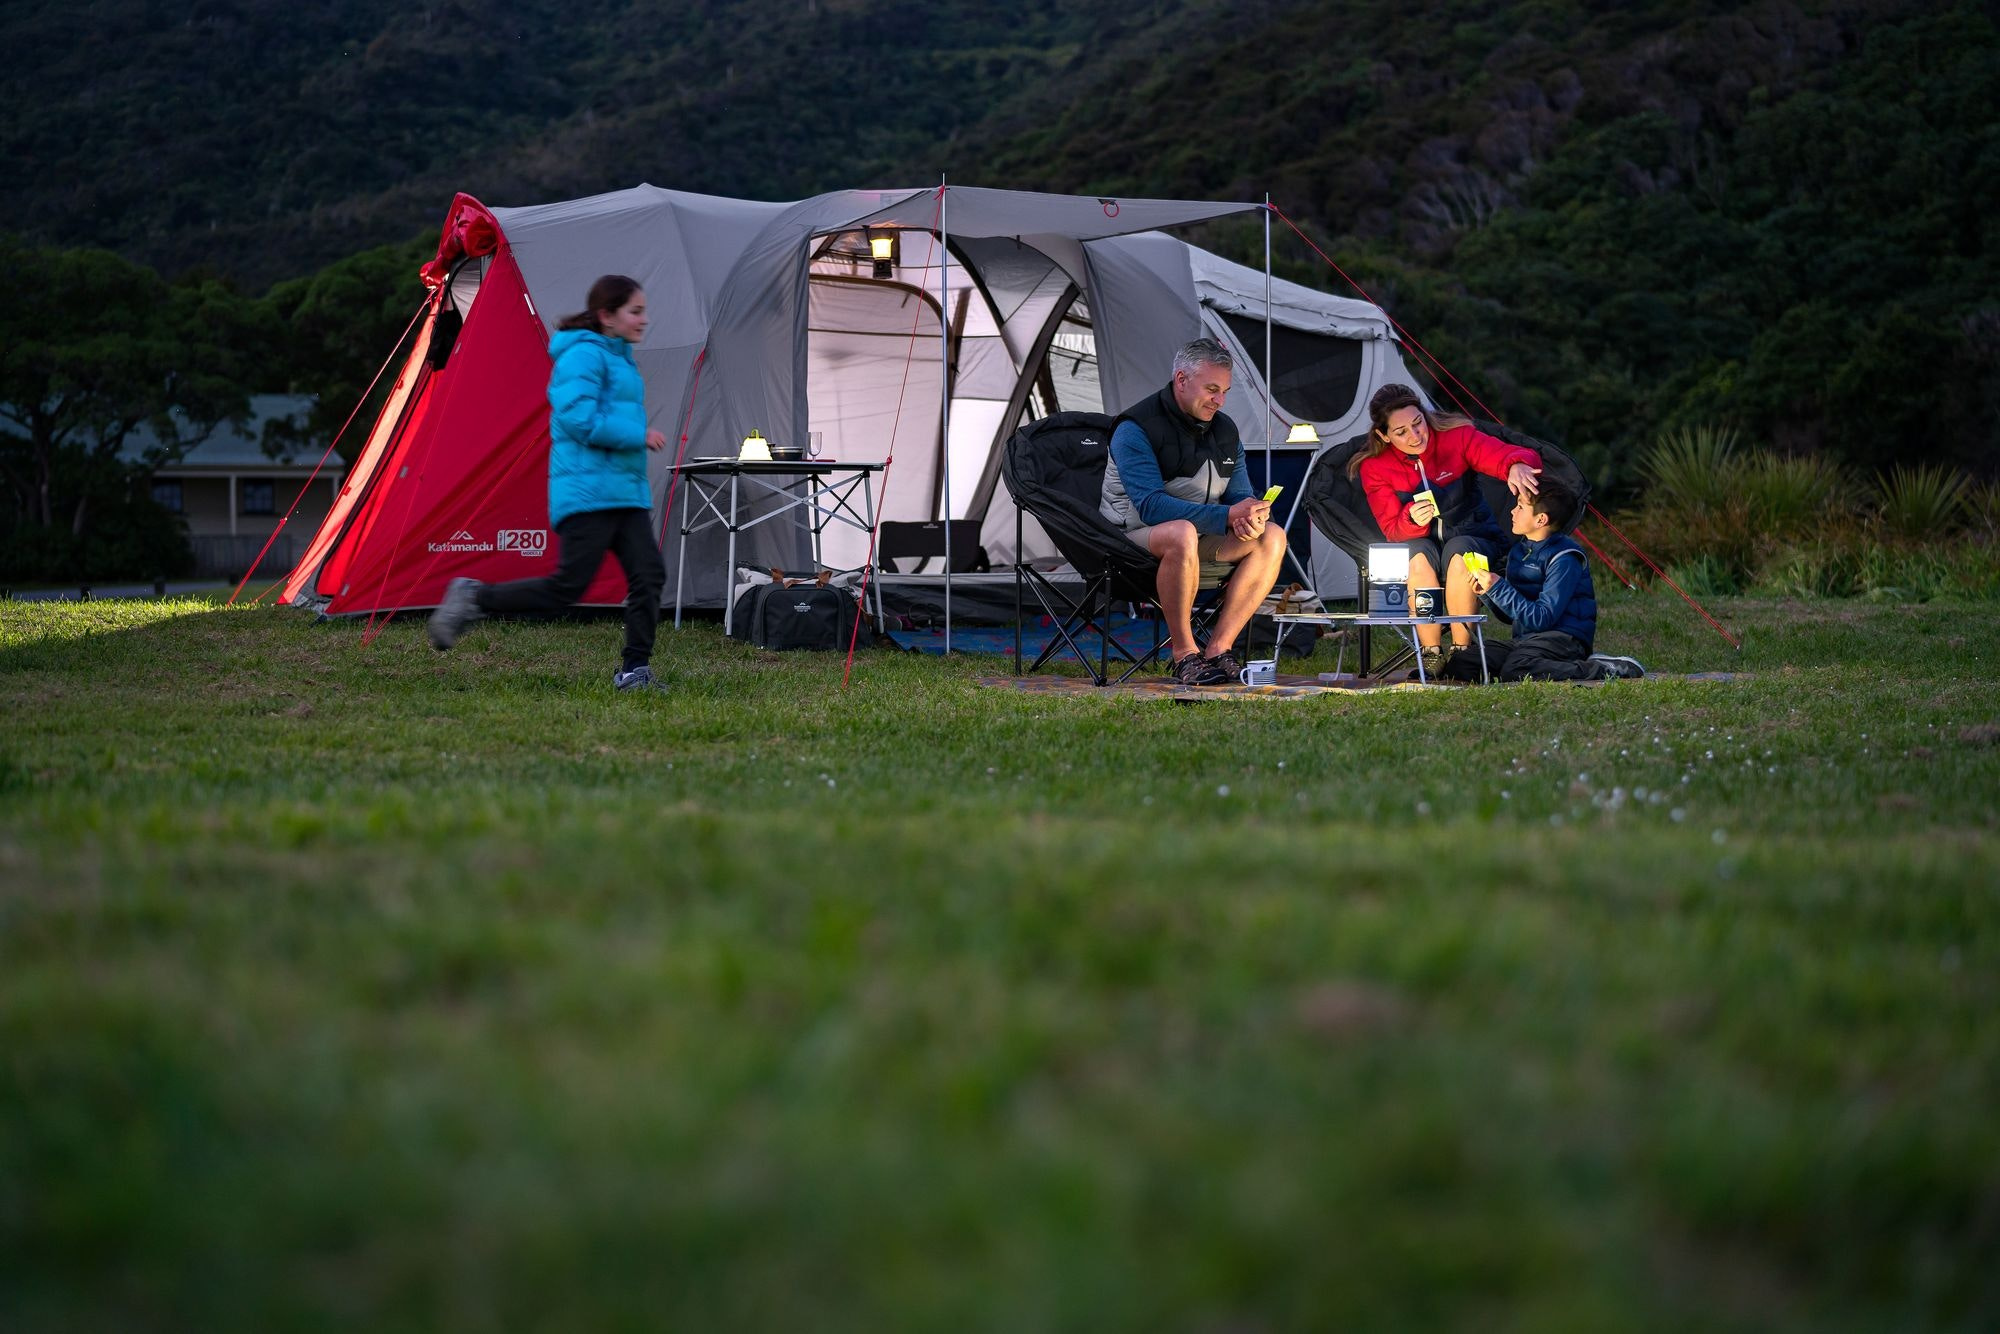 Outdoor Camping Checklists, Tips, Guides, Camping Recipes, and Camping Equipment